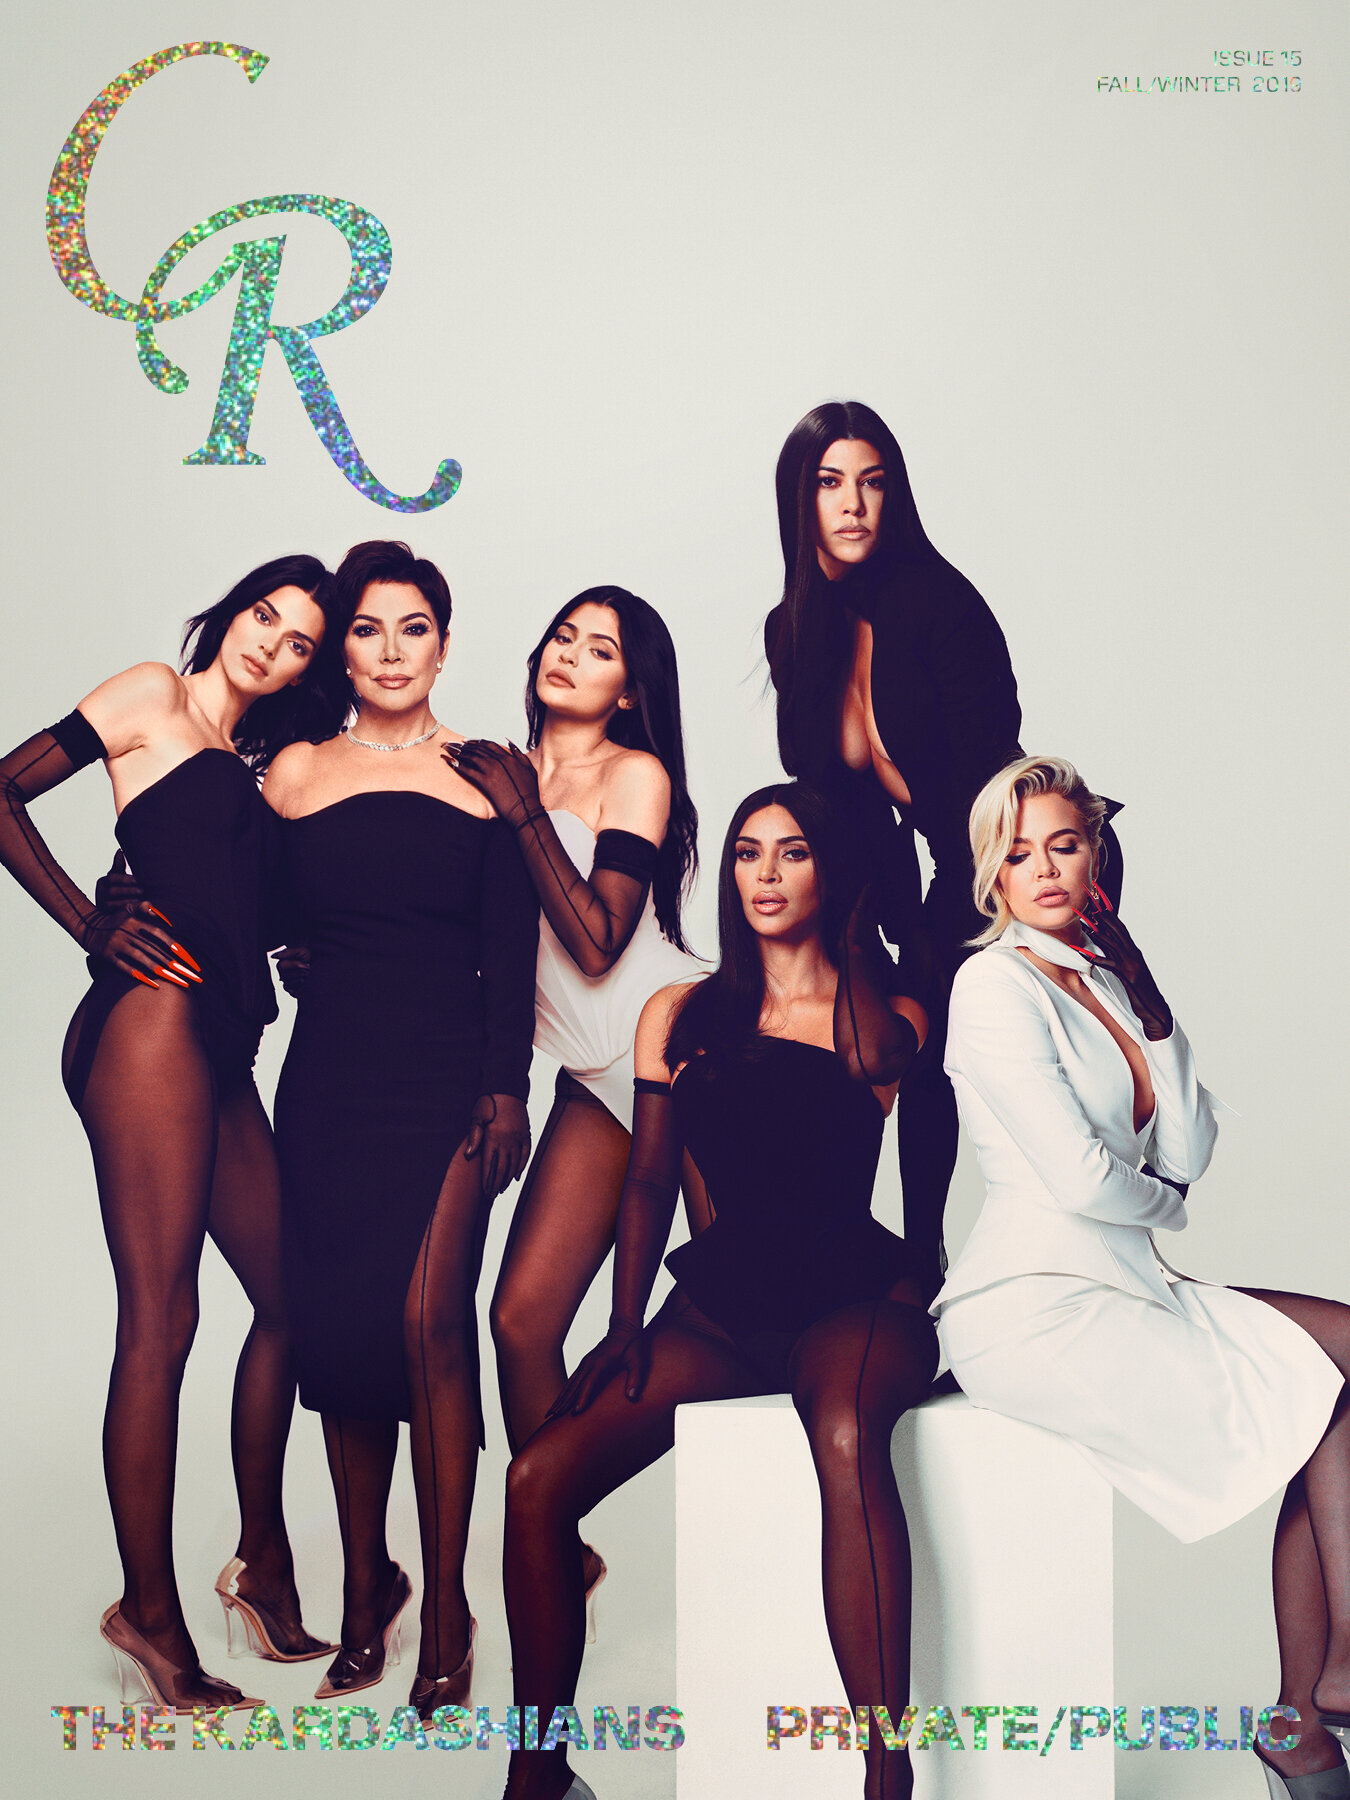 CR14_COVER_COVER_SPINE-KARDASHIAN-2-DIGITAL-glitter.jpg